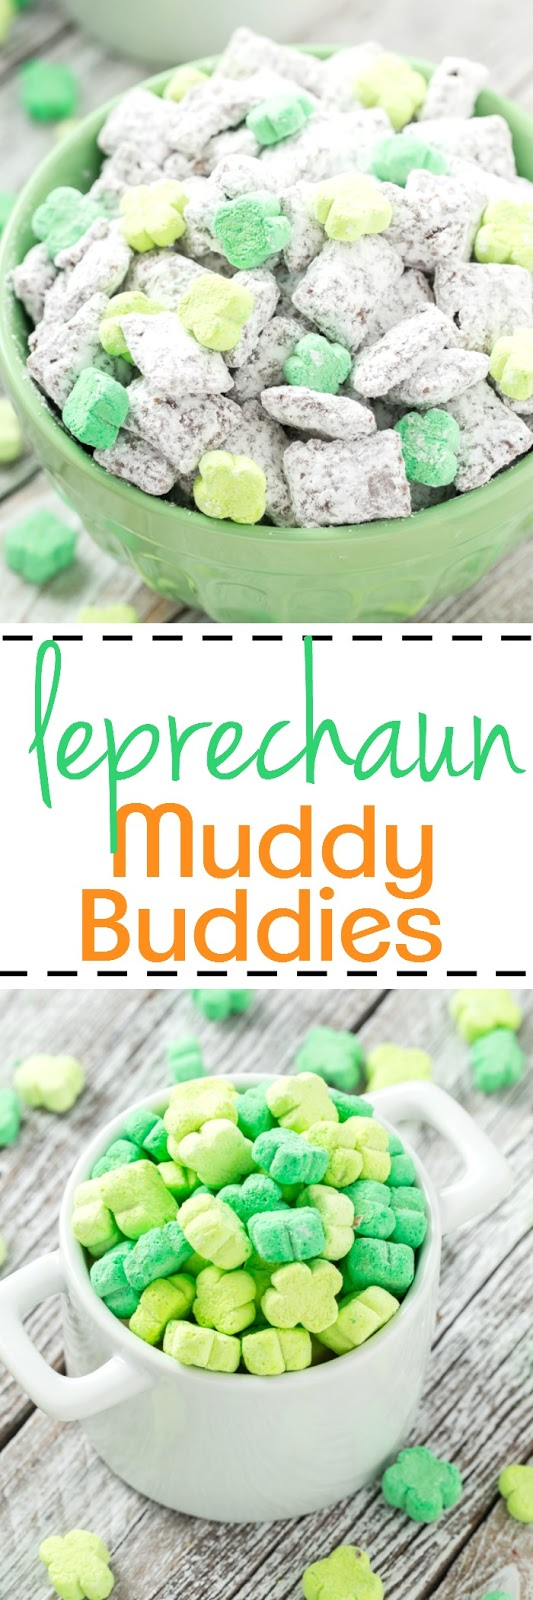 Leprechaun Muddy Buddies